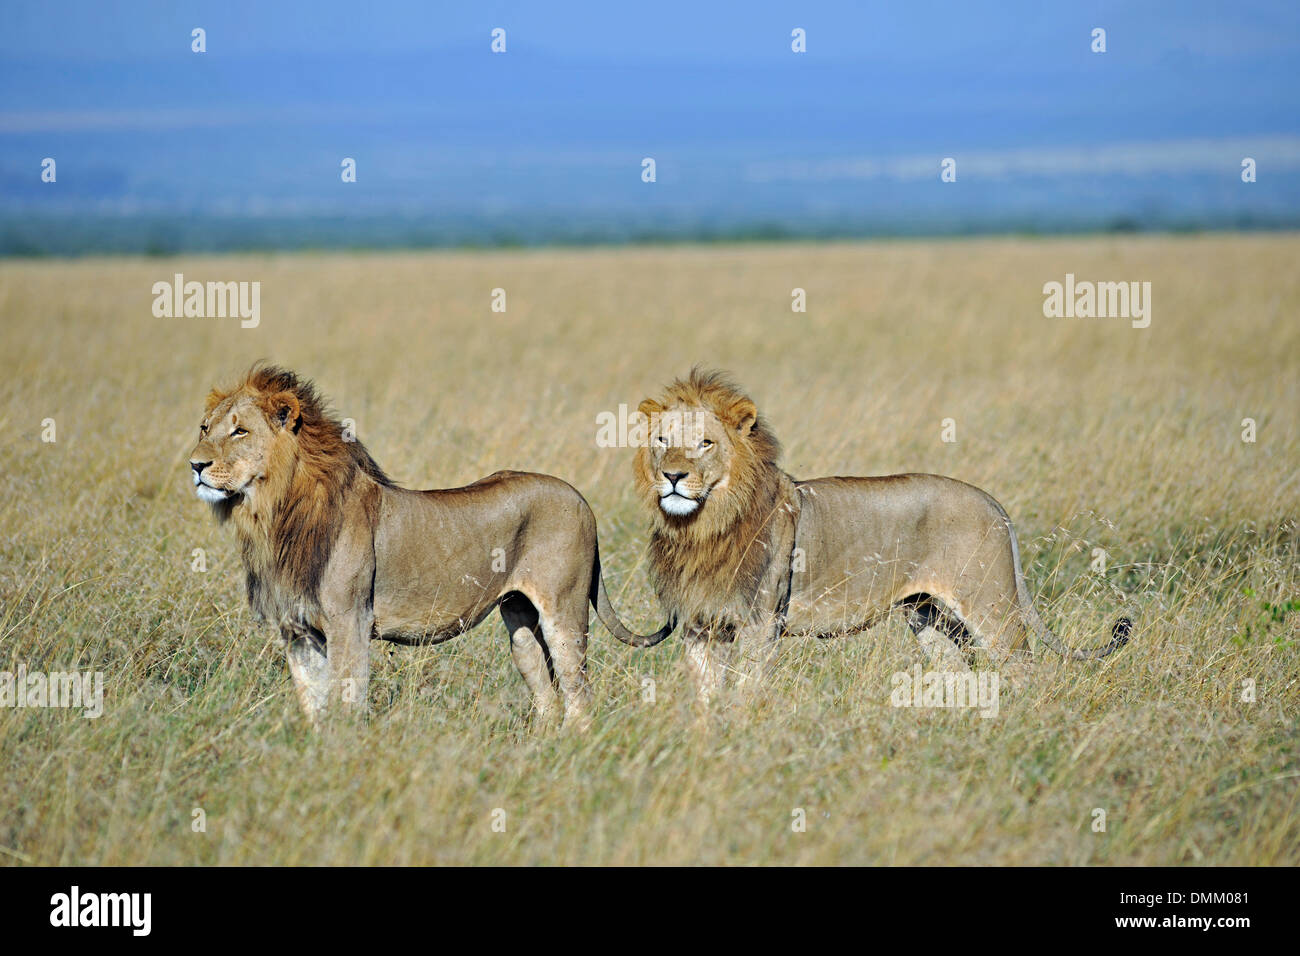 lion in the savanna of africa - Stock Image